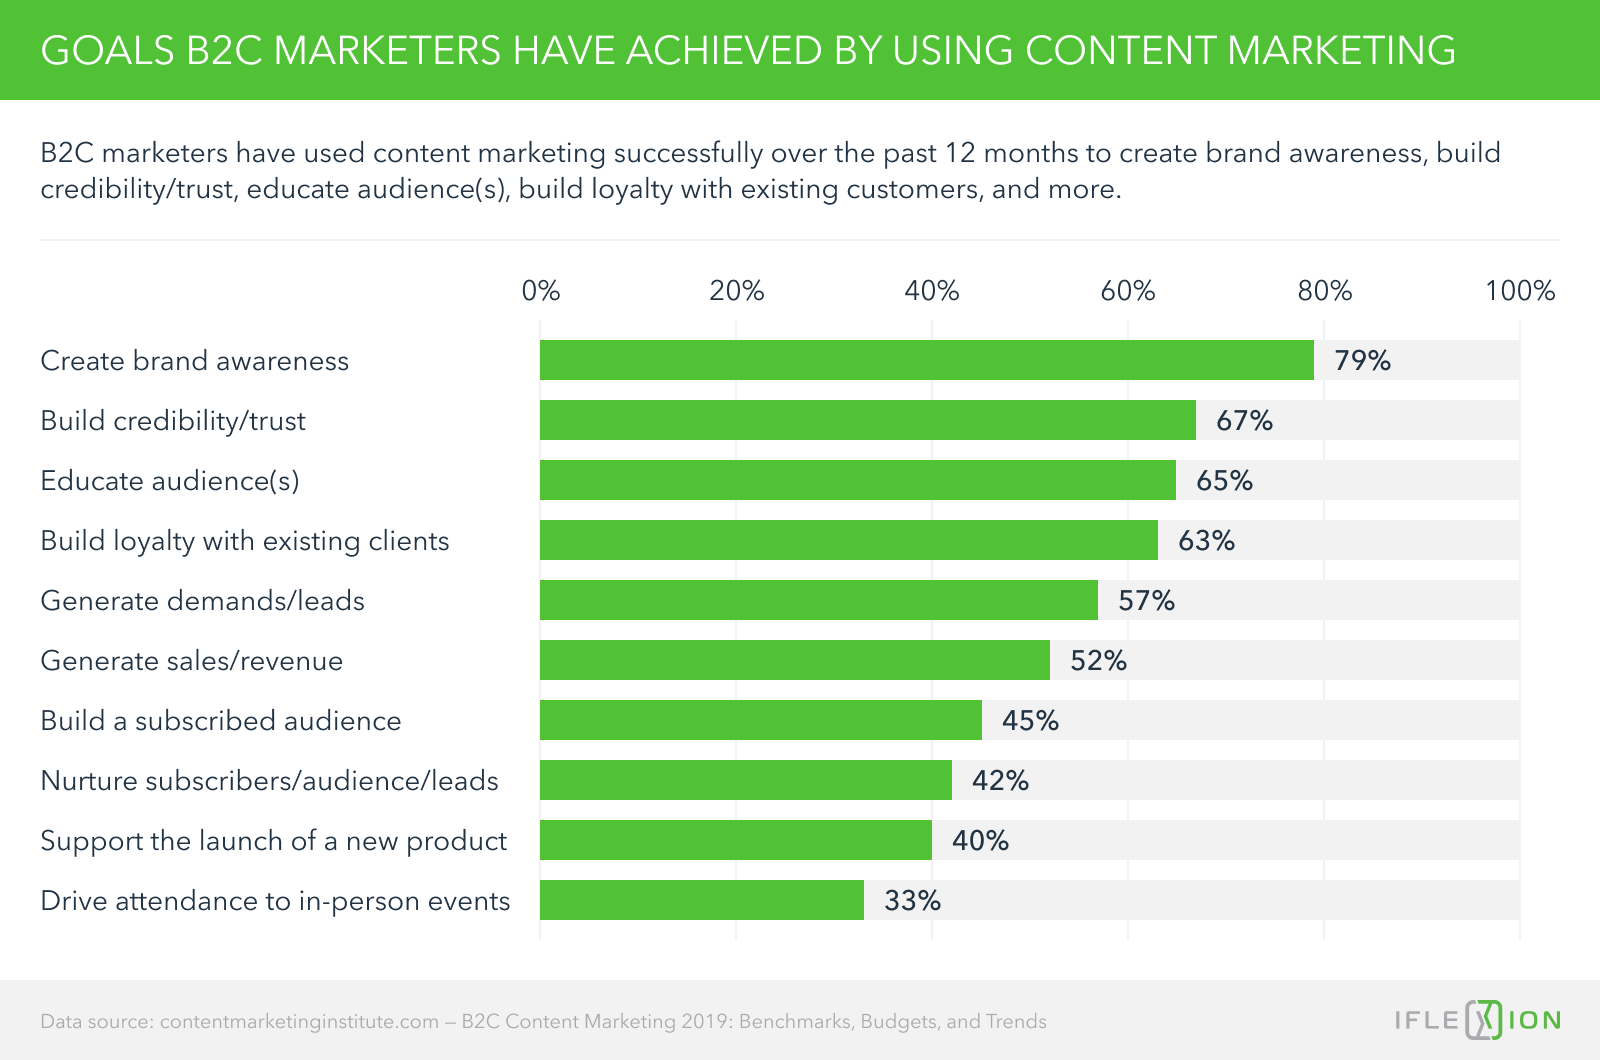 Goals B2C marketers have achieved by using content marketing